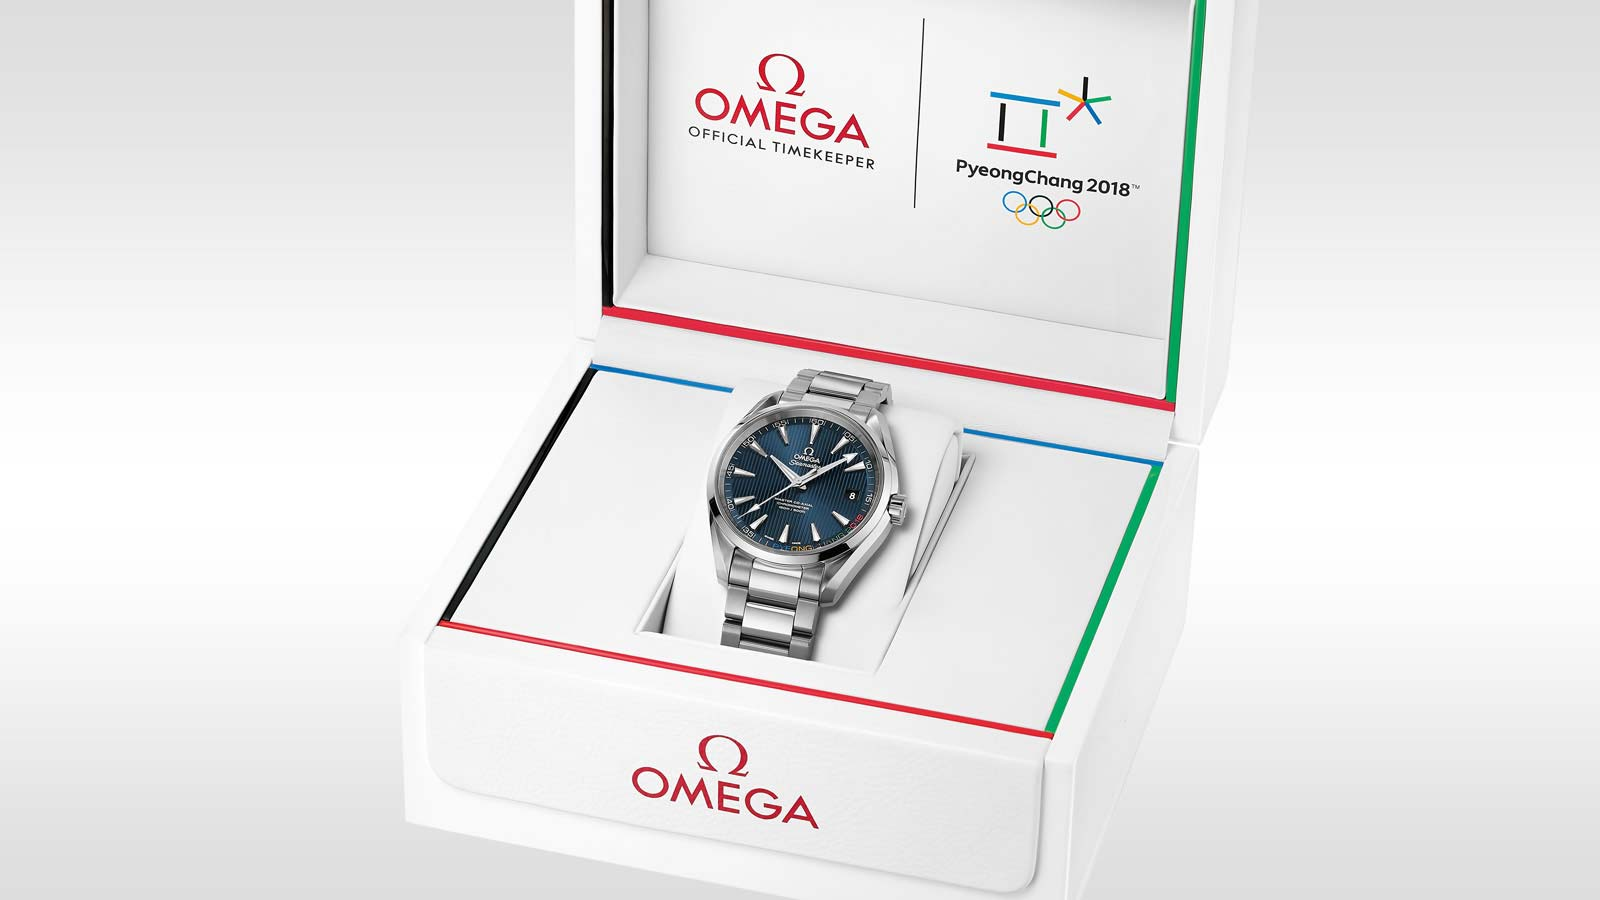 Omega Olympic Watches 2018